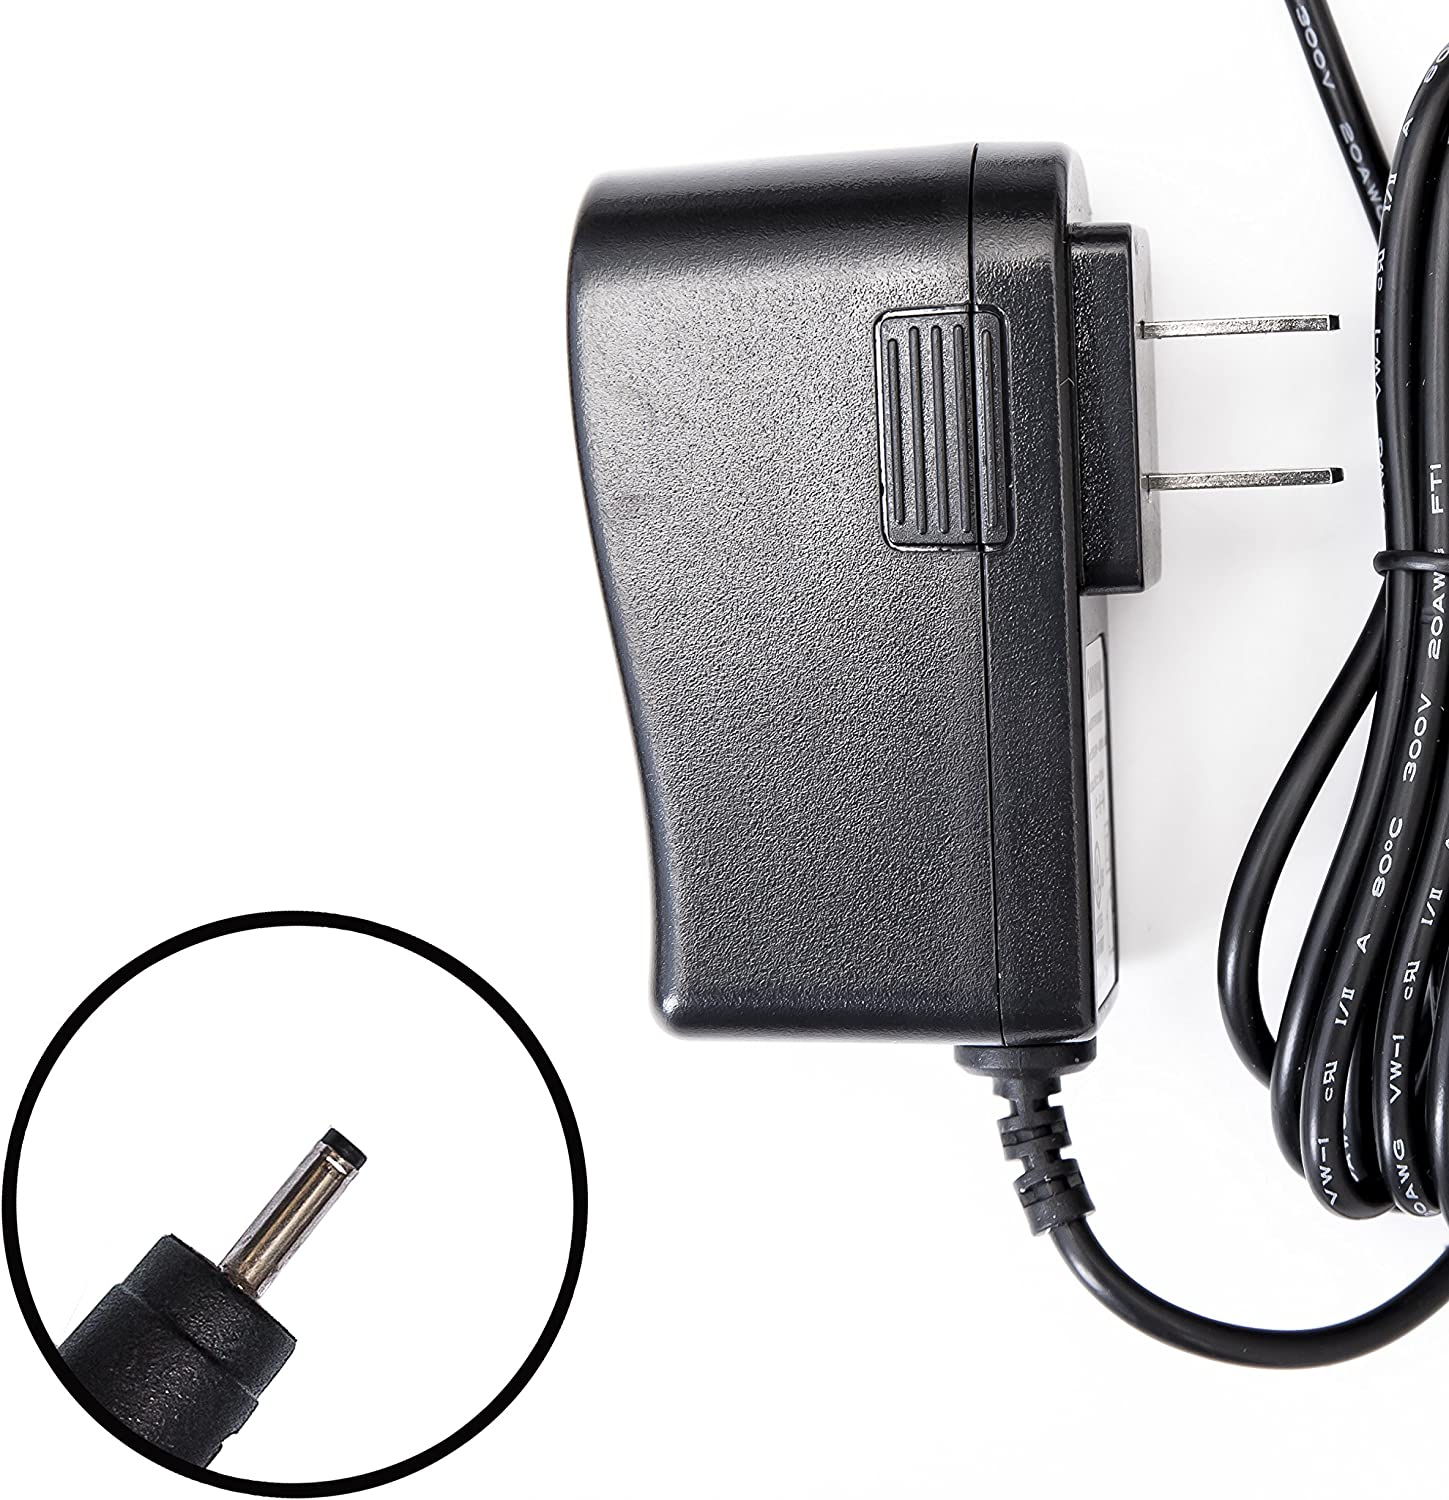 Cable PS Camera Unit Only CS6D059100FU Digital Video Camera Monitor Omnihil AC//DC Power Adapter Compatible with Infant Optics DXR-8 2AAAM-DXR-8BU P//N